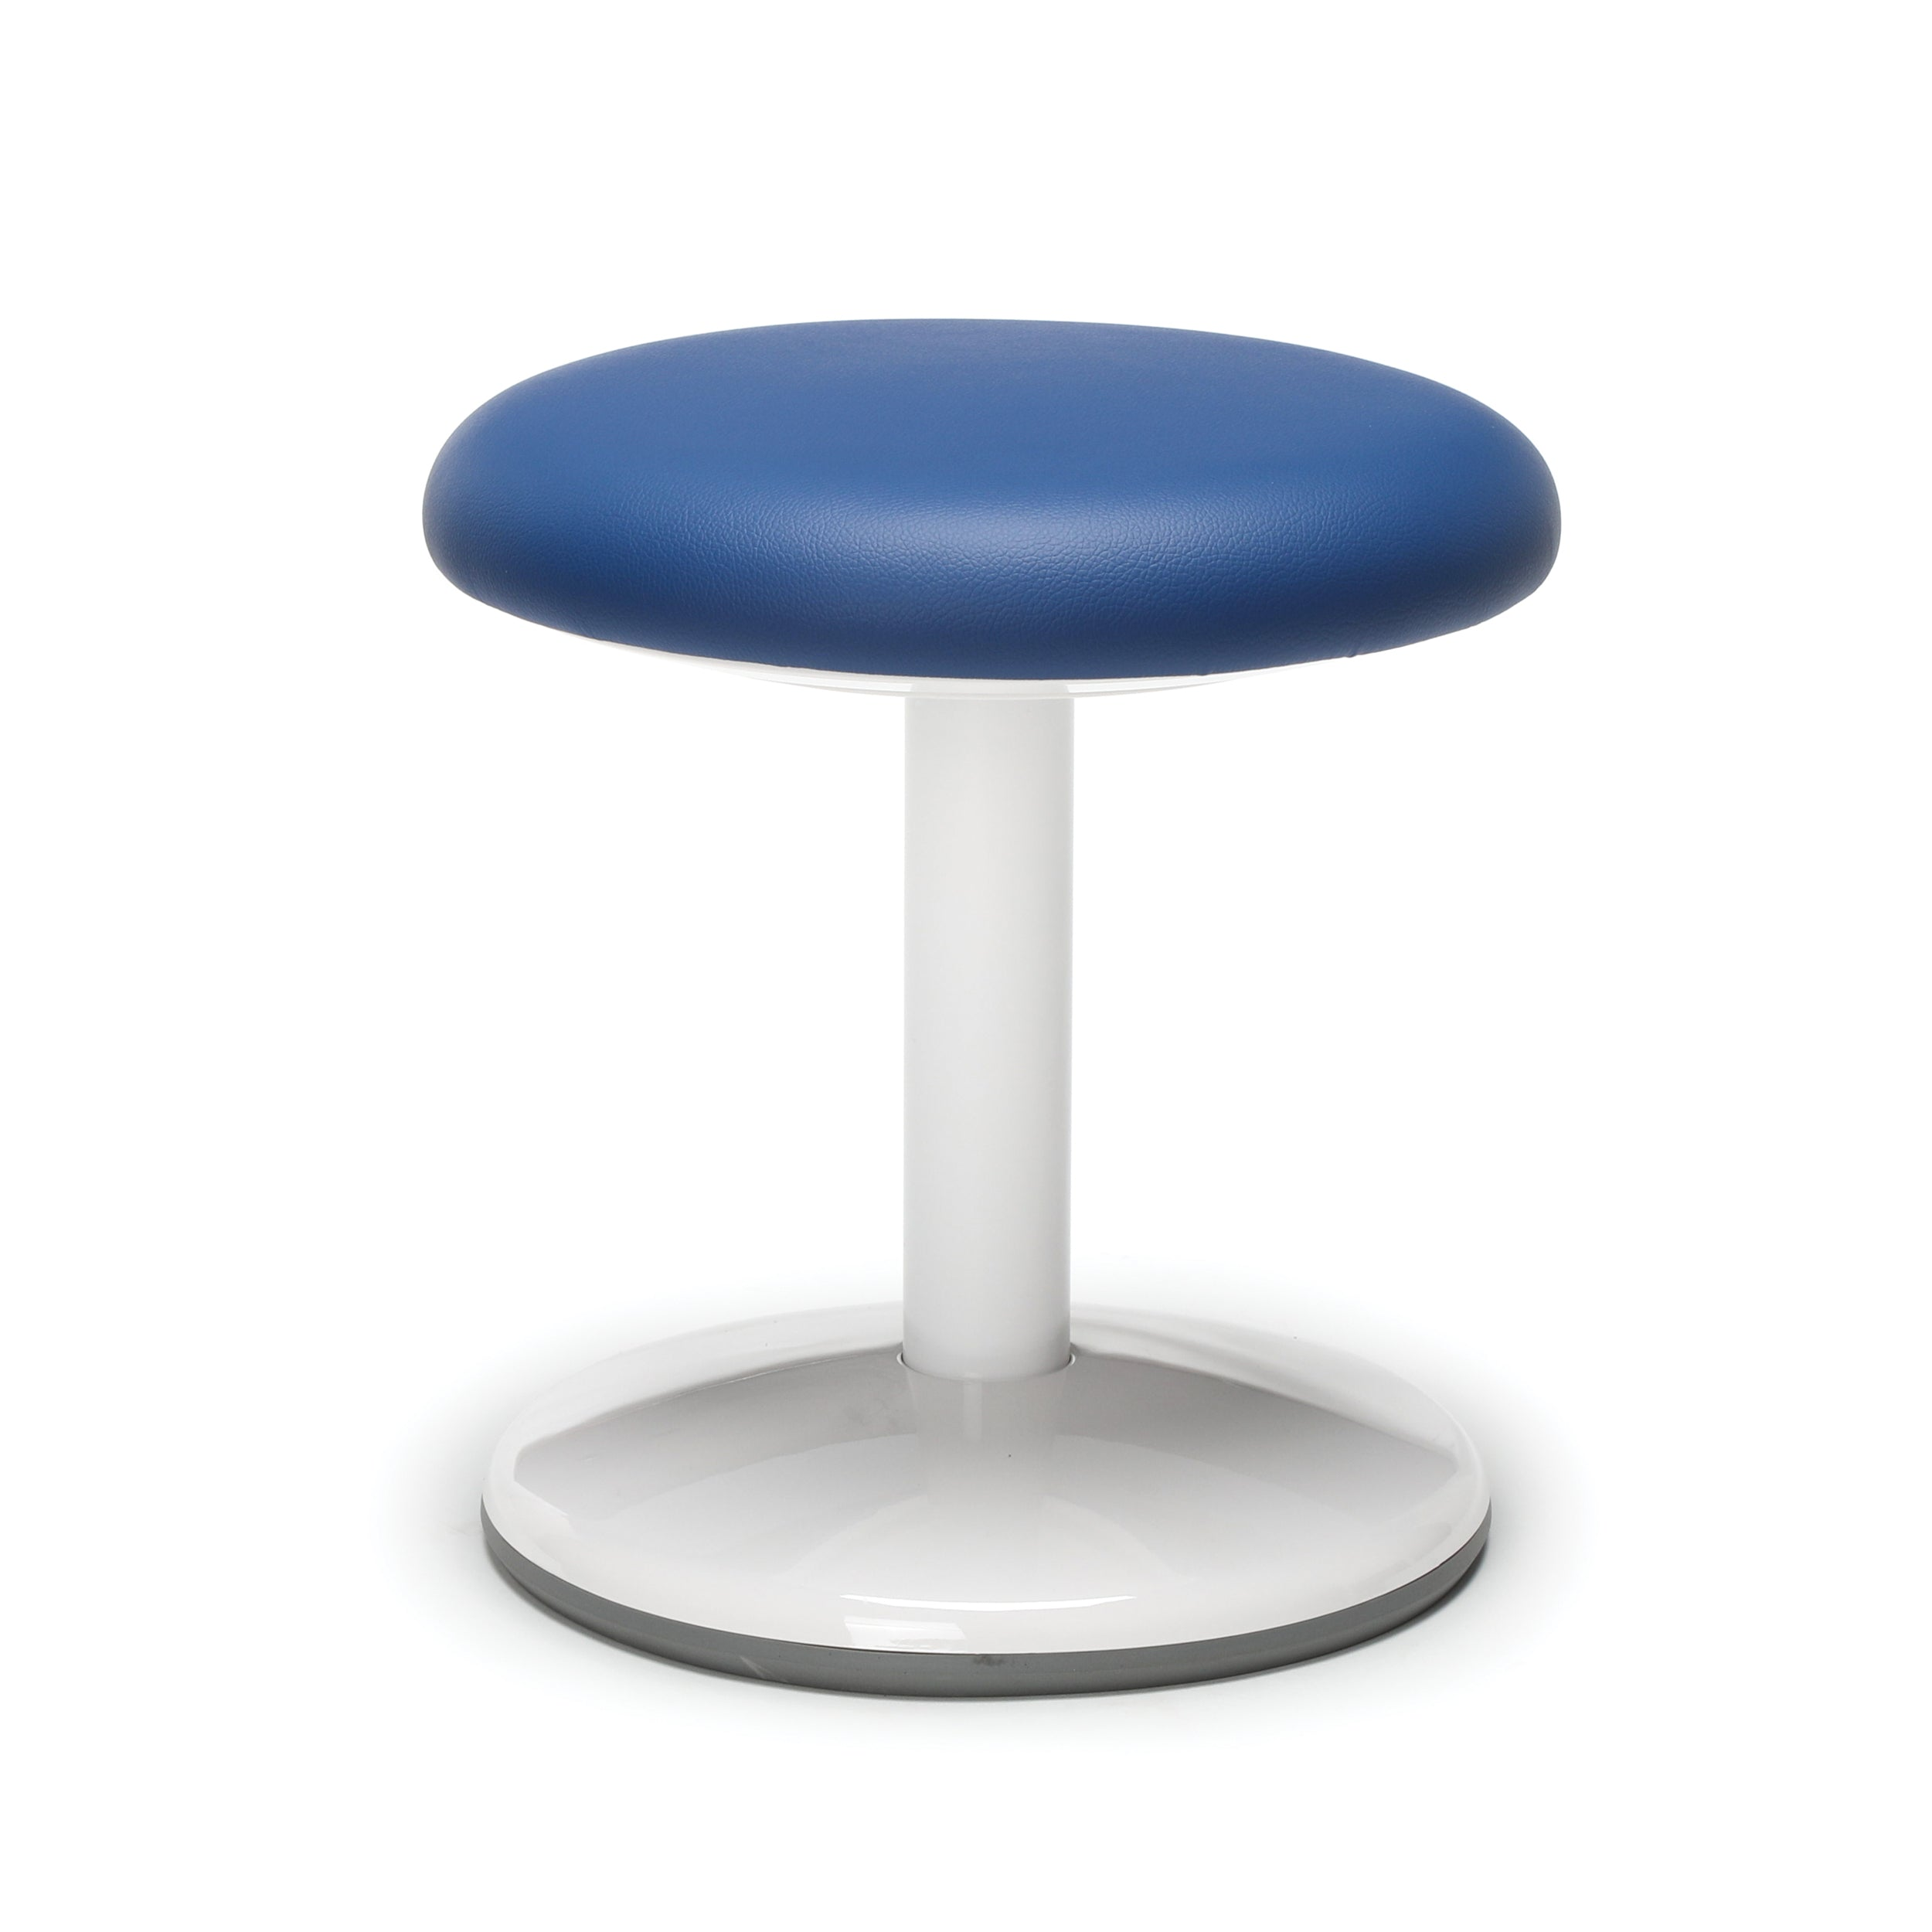 Ofminc Model 2814-STA-V Orbit 14 Inch High Vinyl Static Stool